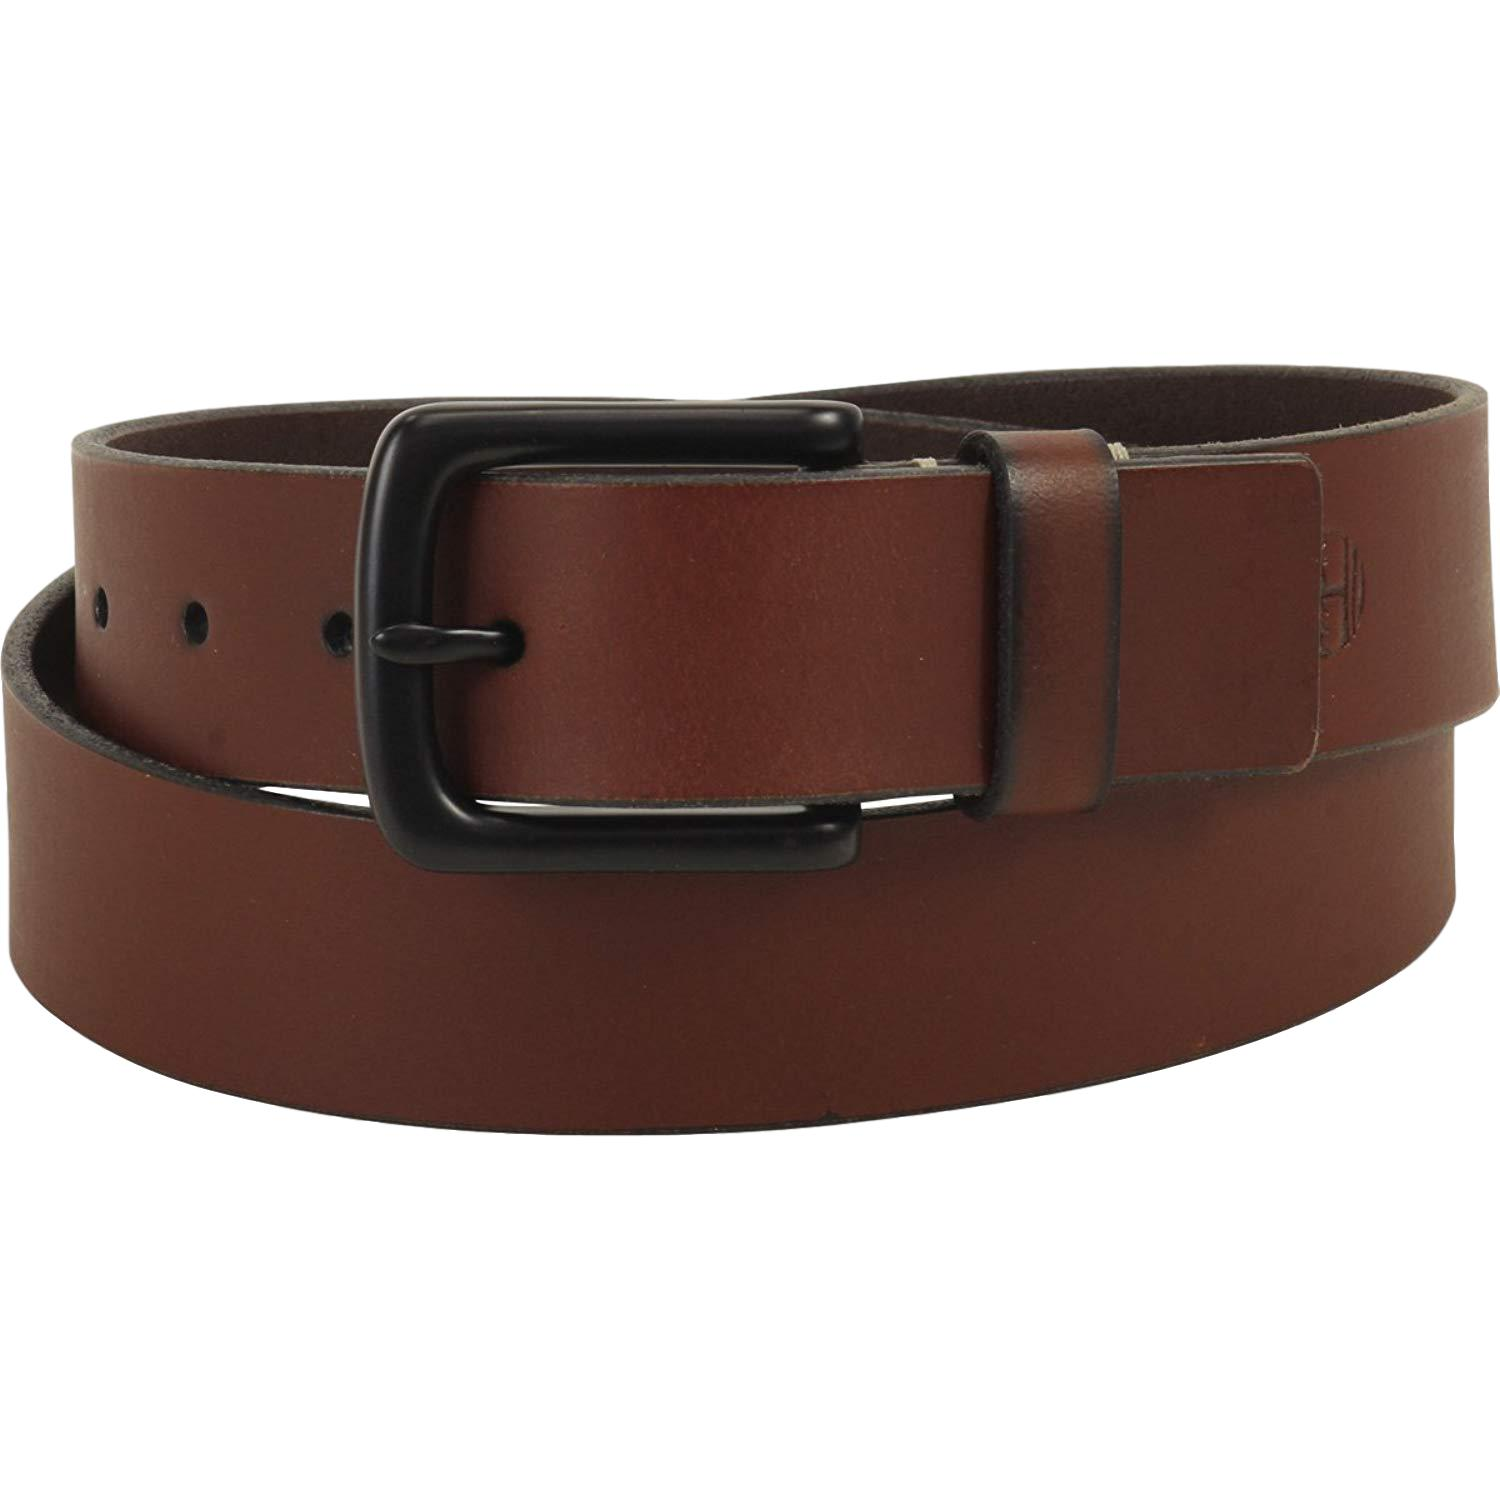 thumbnail 8 - Timberland Men's 38MM Genuine Leather Belt with Black Metal Buckle